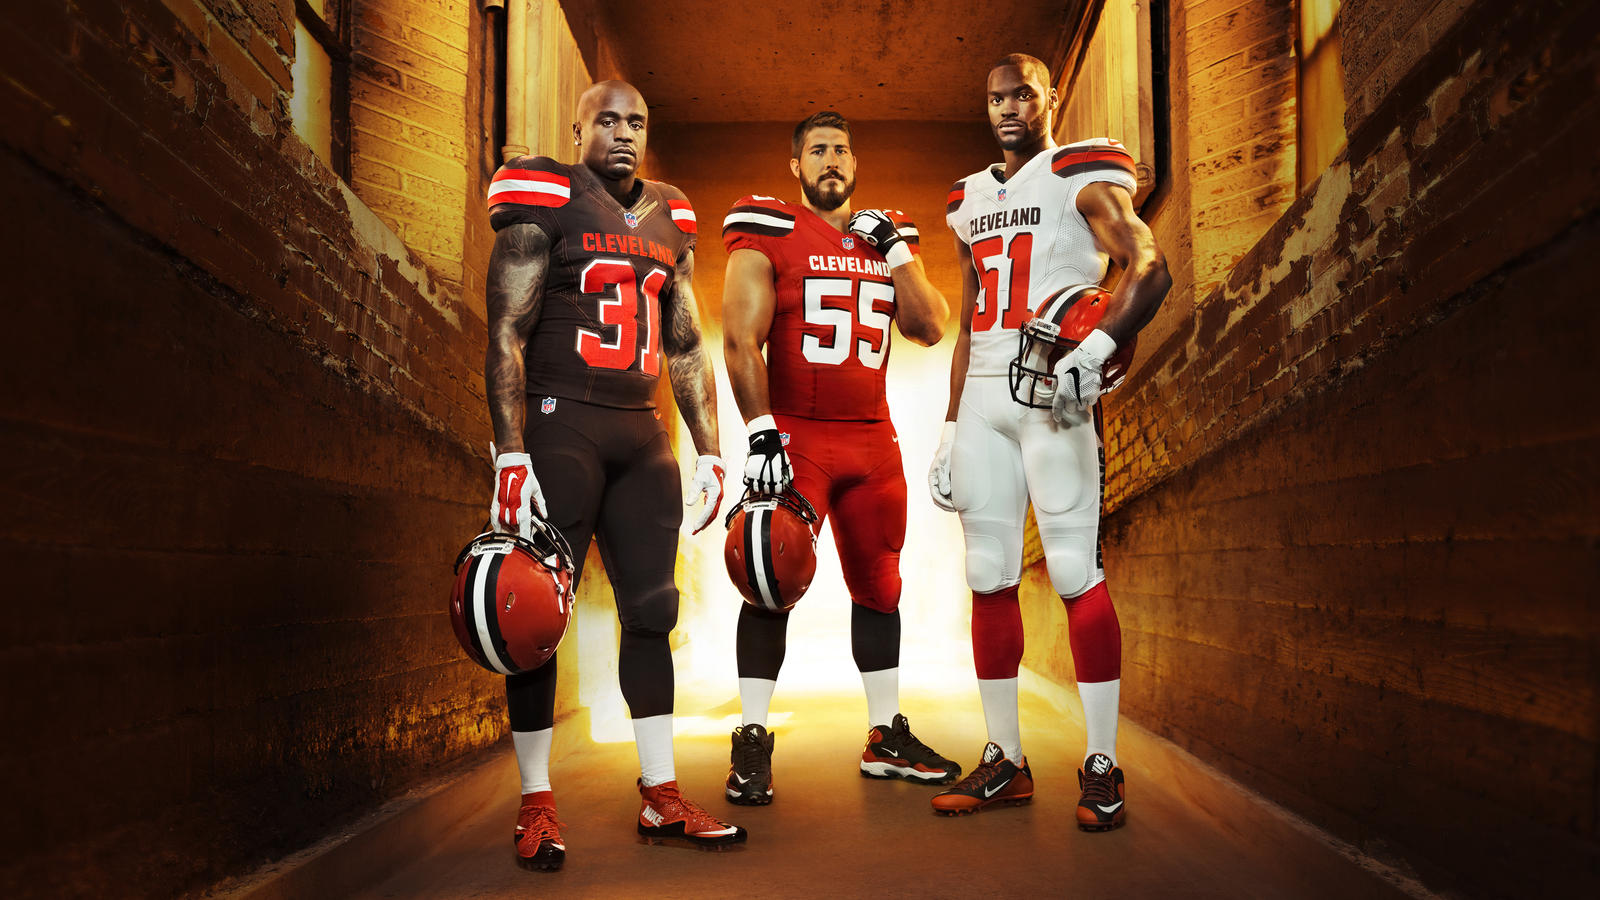 reputable site 125a8 0a4da Cleveland Browns Celebrate Their Fans and Team History With ...